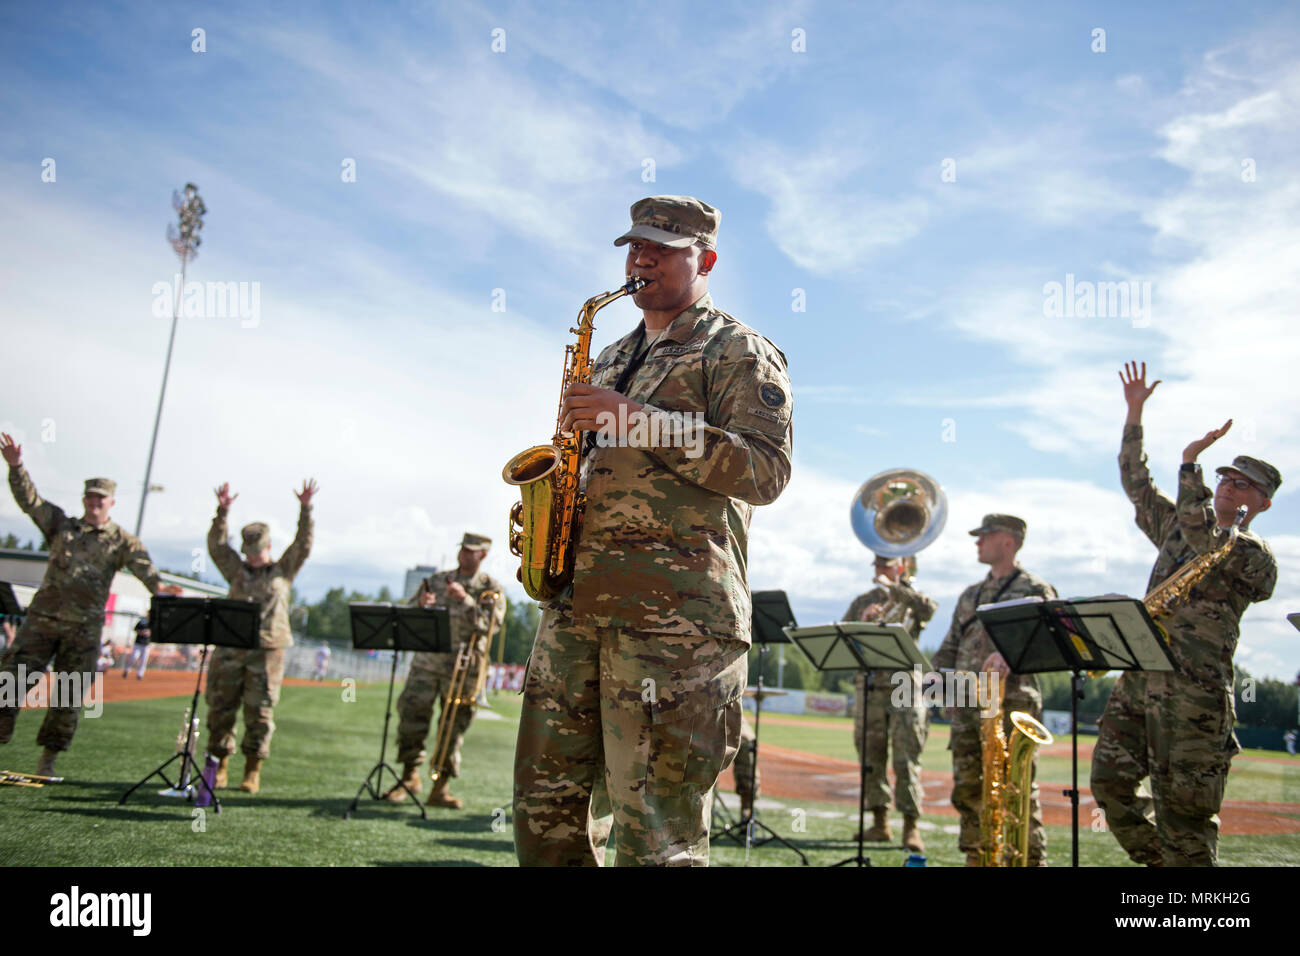 U.S. Army Alaska's 9th Army Band serenades Anchorage area baseball fans at Mulcahy Stadium in Anchorage, Alaska, June 16, 2017. The Anchorage Bucs faced off against the Peninsula Oilers for a doubleheader as part of a military appreciation event. (U.S. Air Force photo by Airman 1st Class Javier Alvarez) - Stock Image